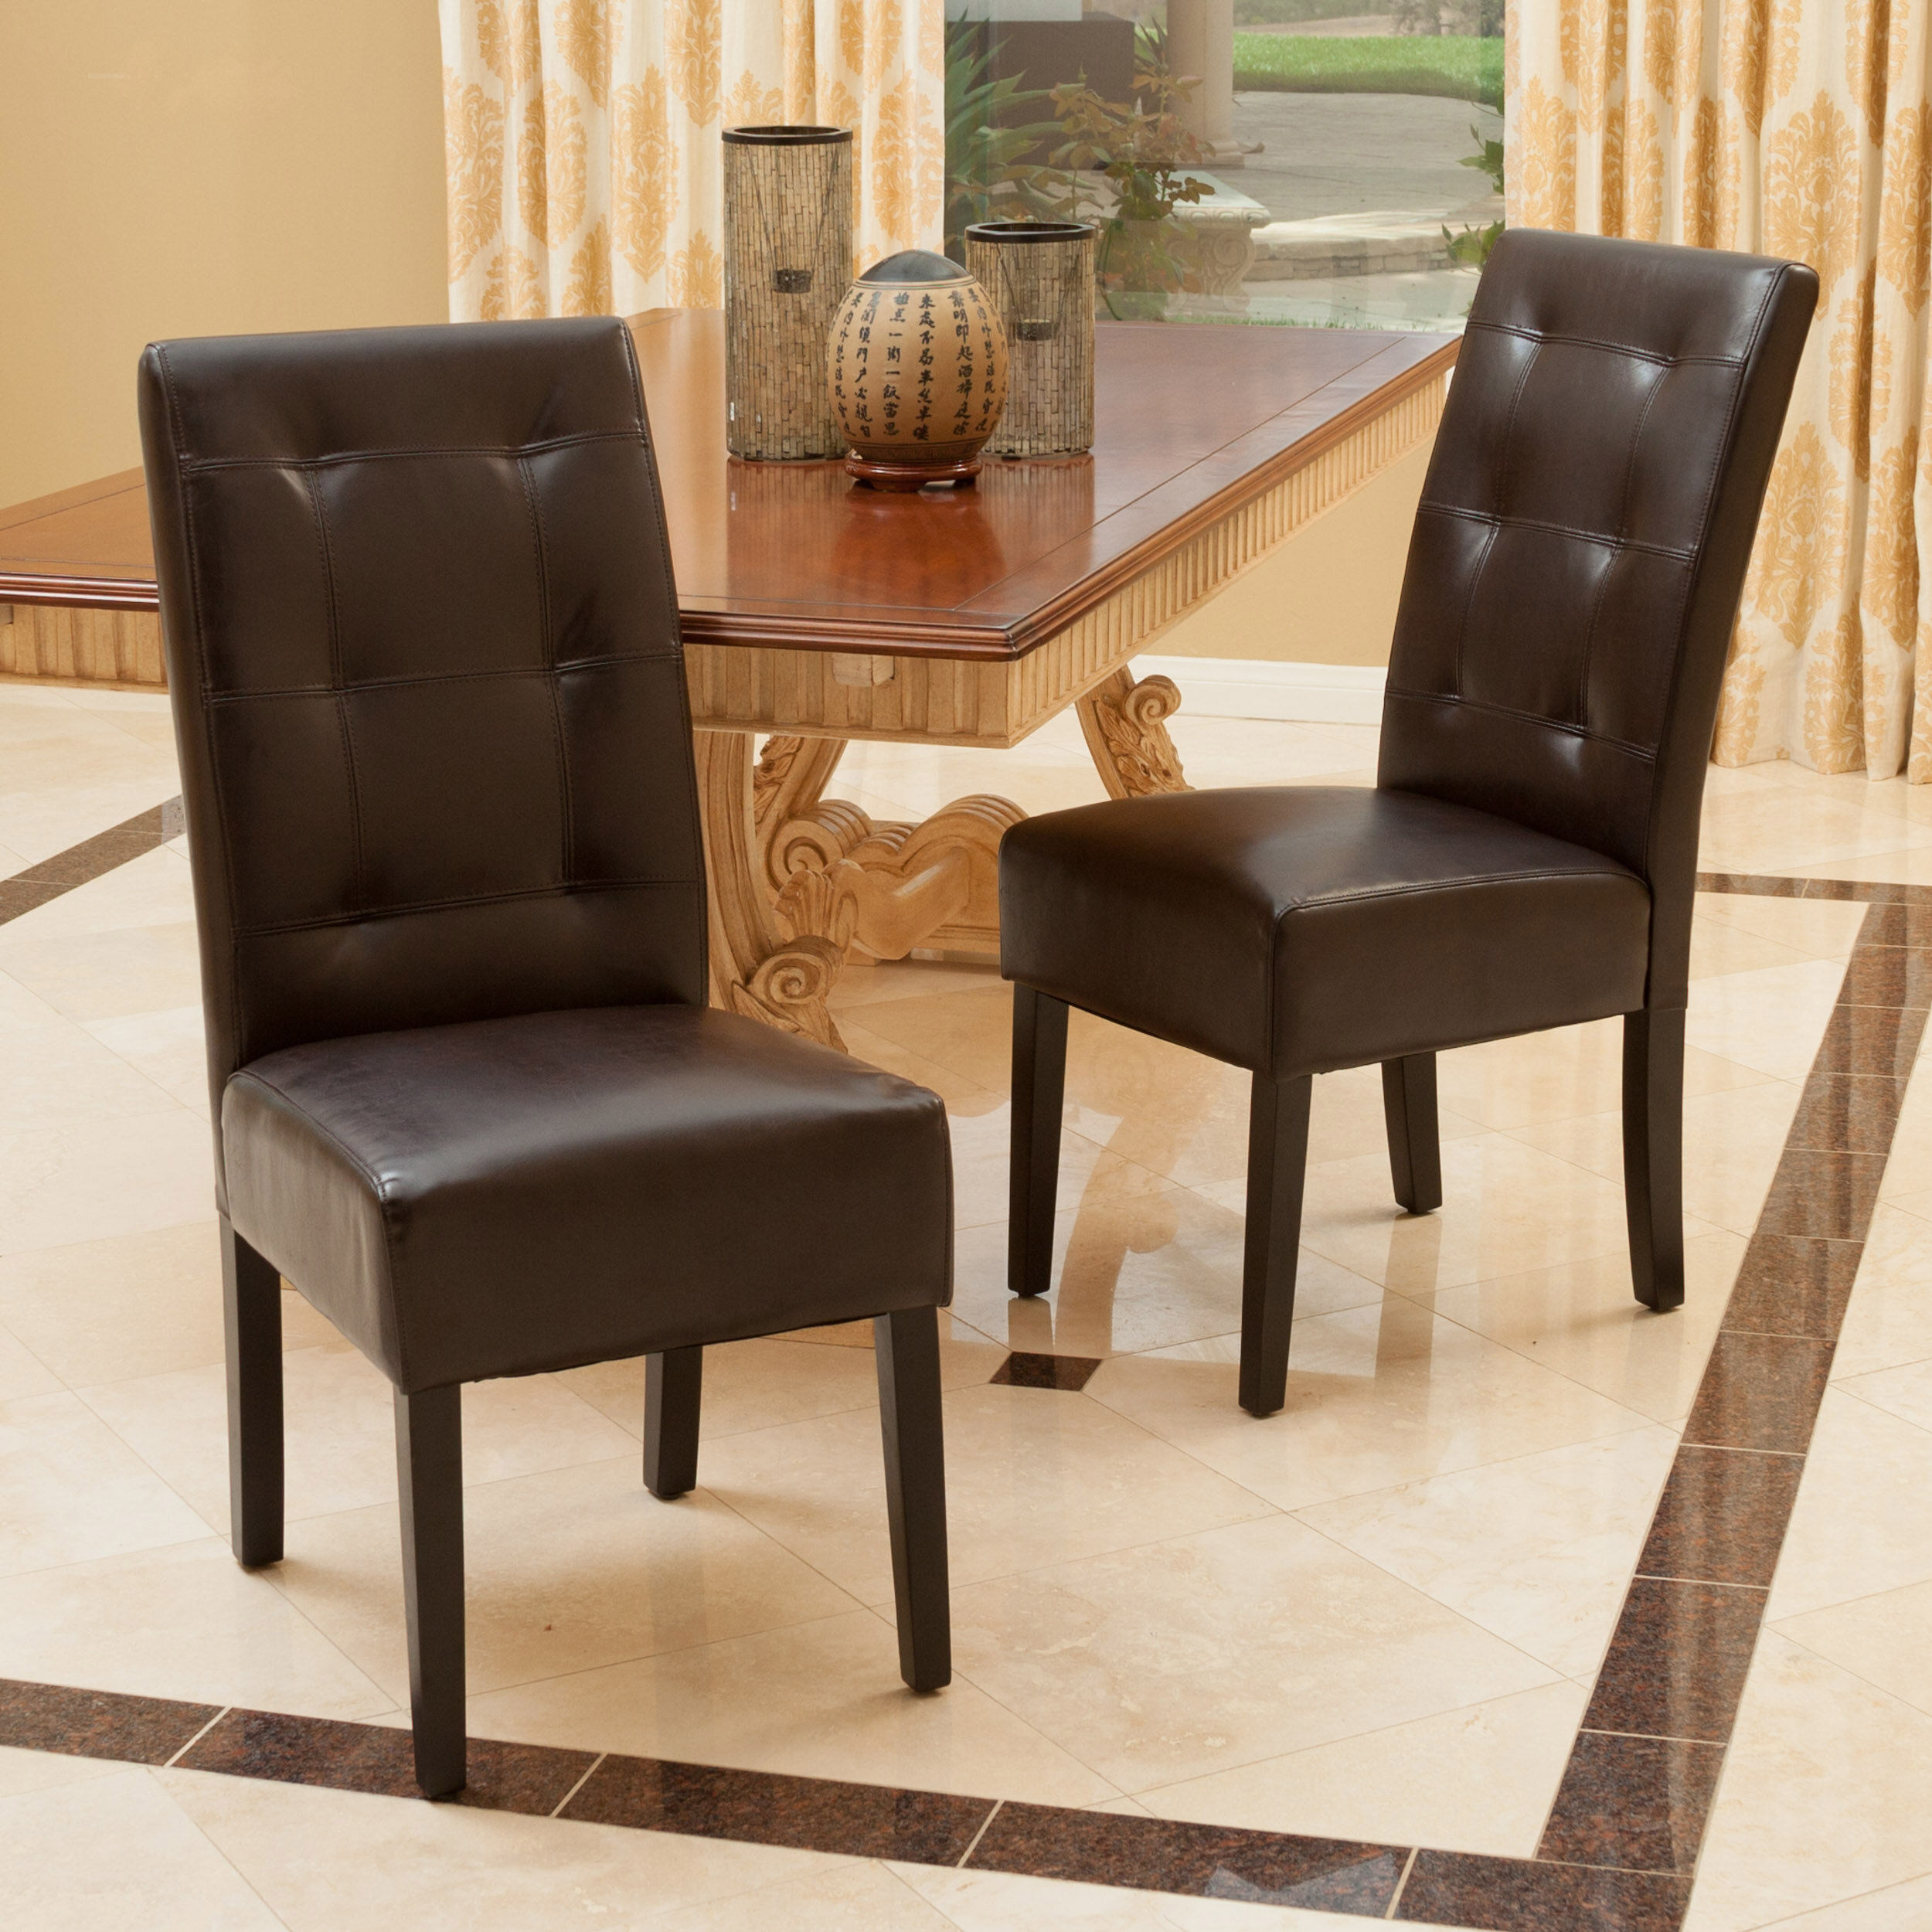 buy online f7732 704d2 Schuster Genuine Leather Upholstered Dining Chair